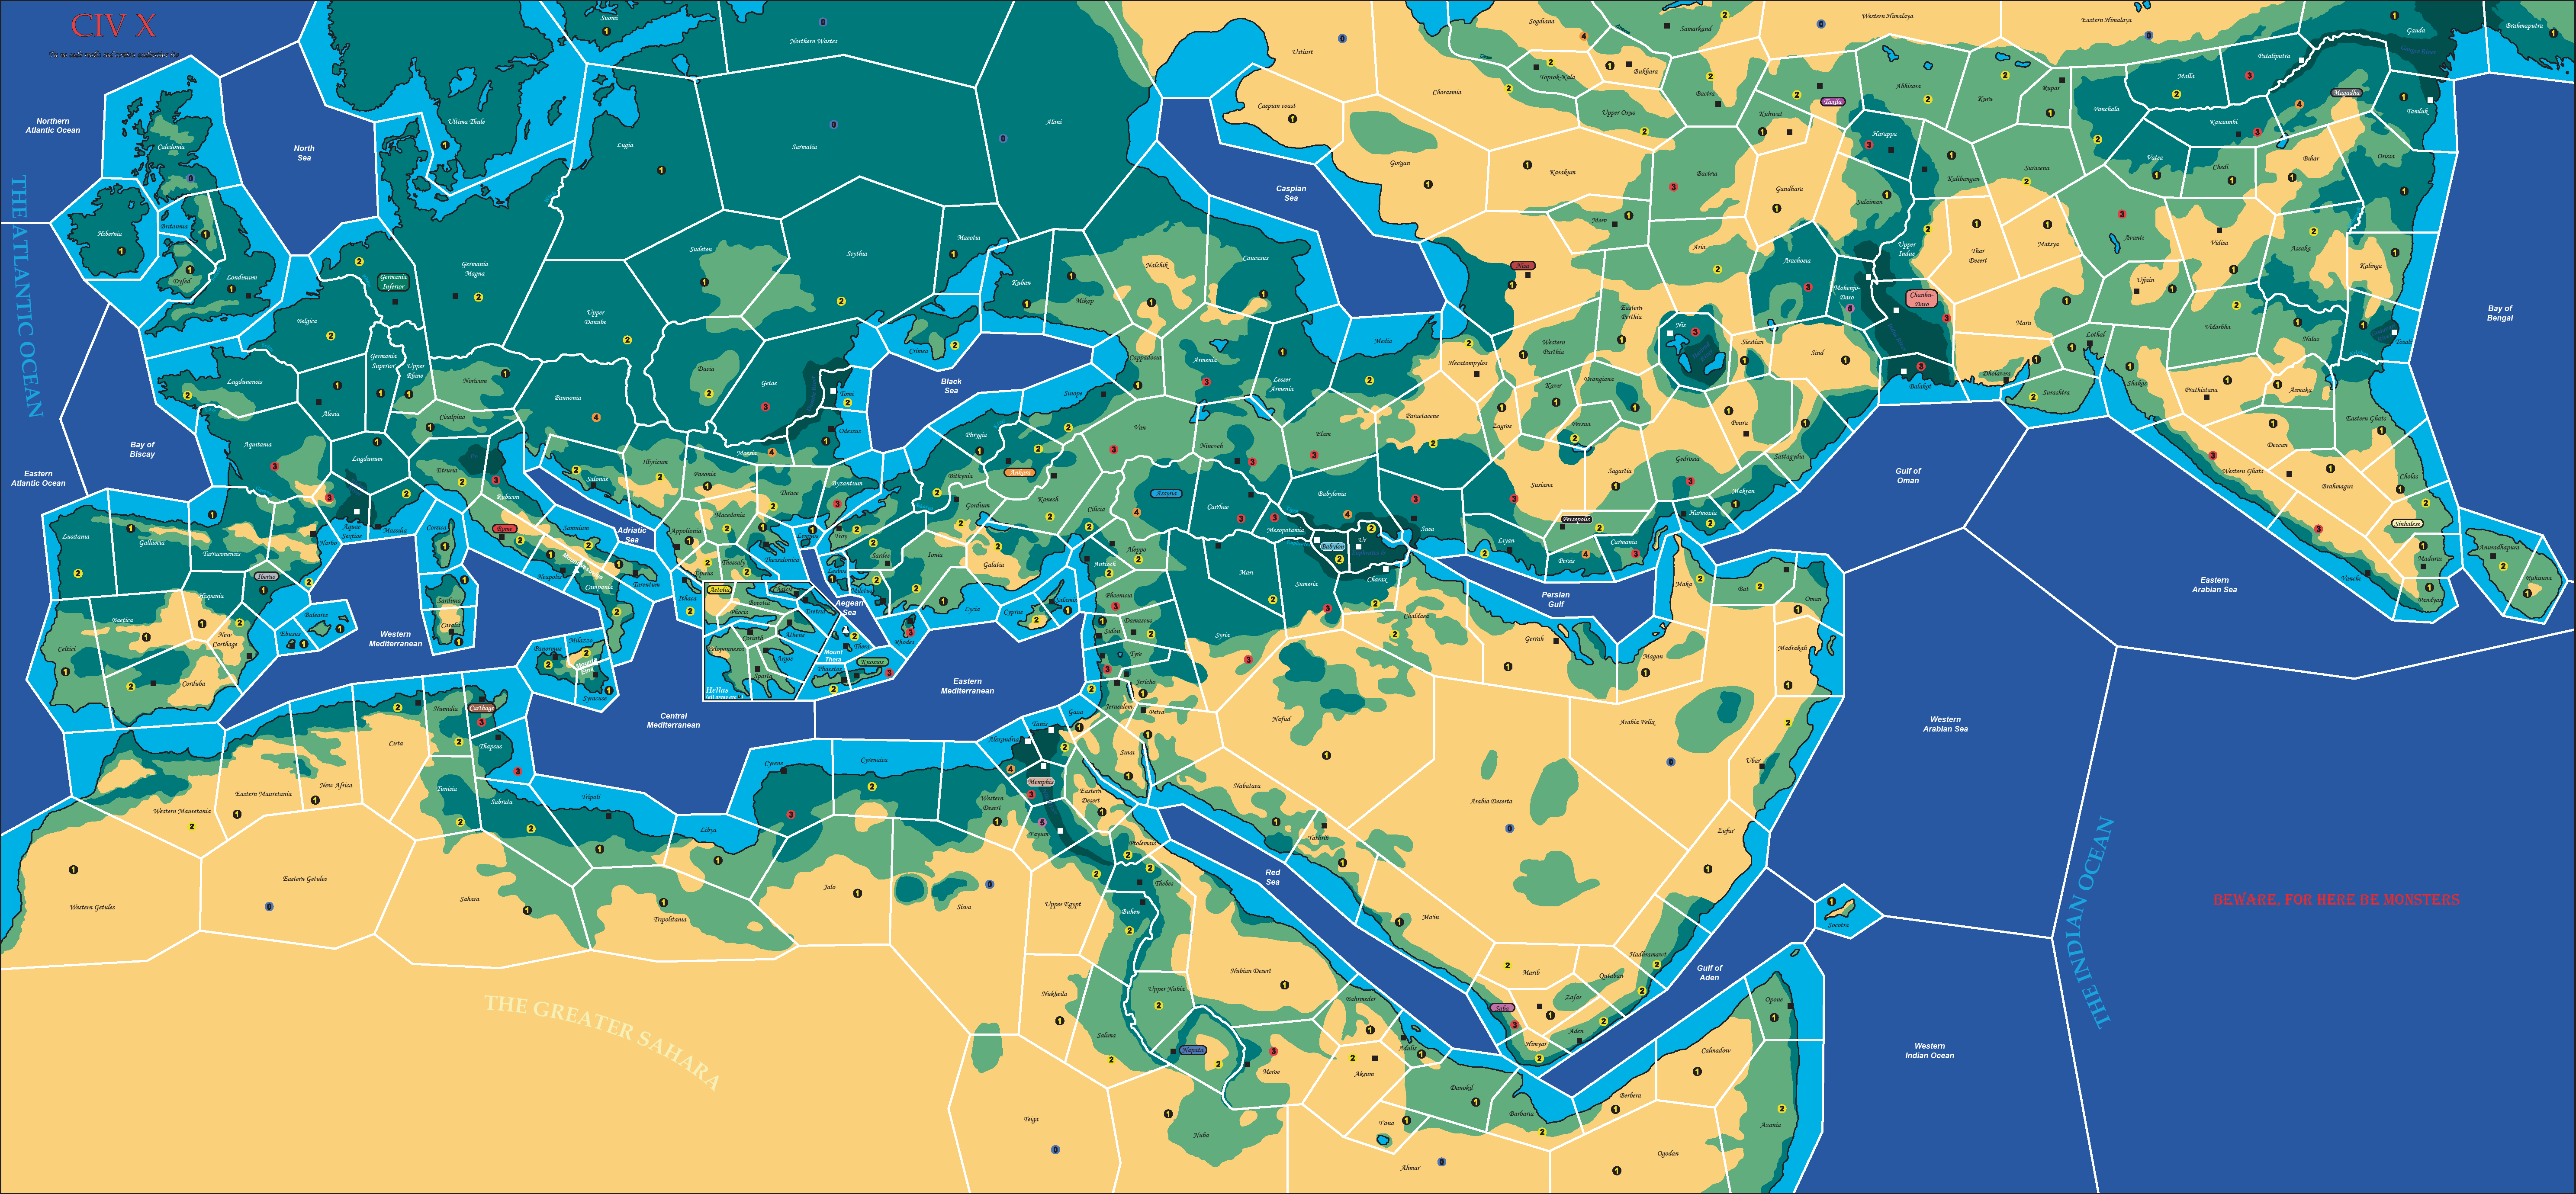 A very large civilization board game map click to see image a very large civilization board game map click to see image gumiabroncs Gallery